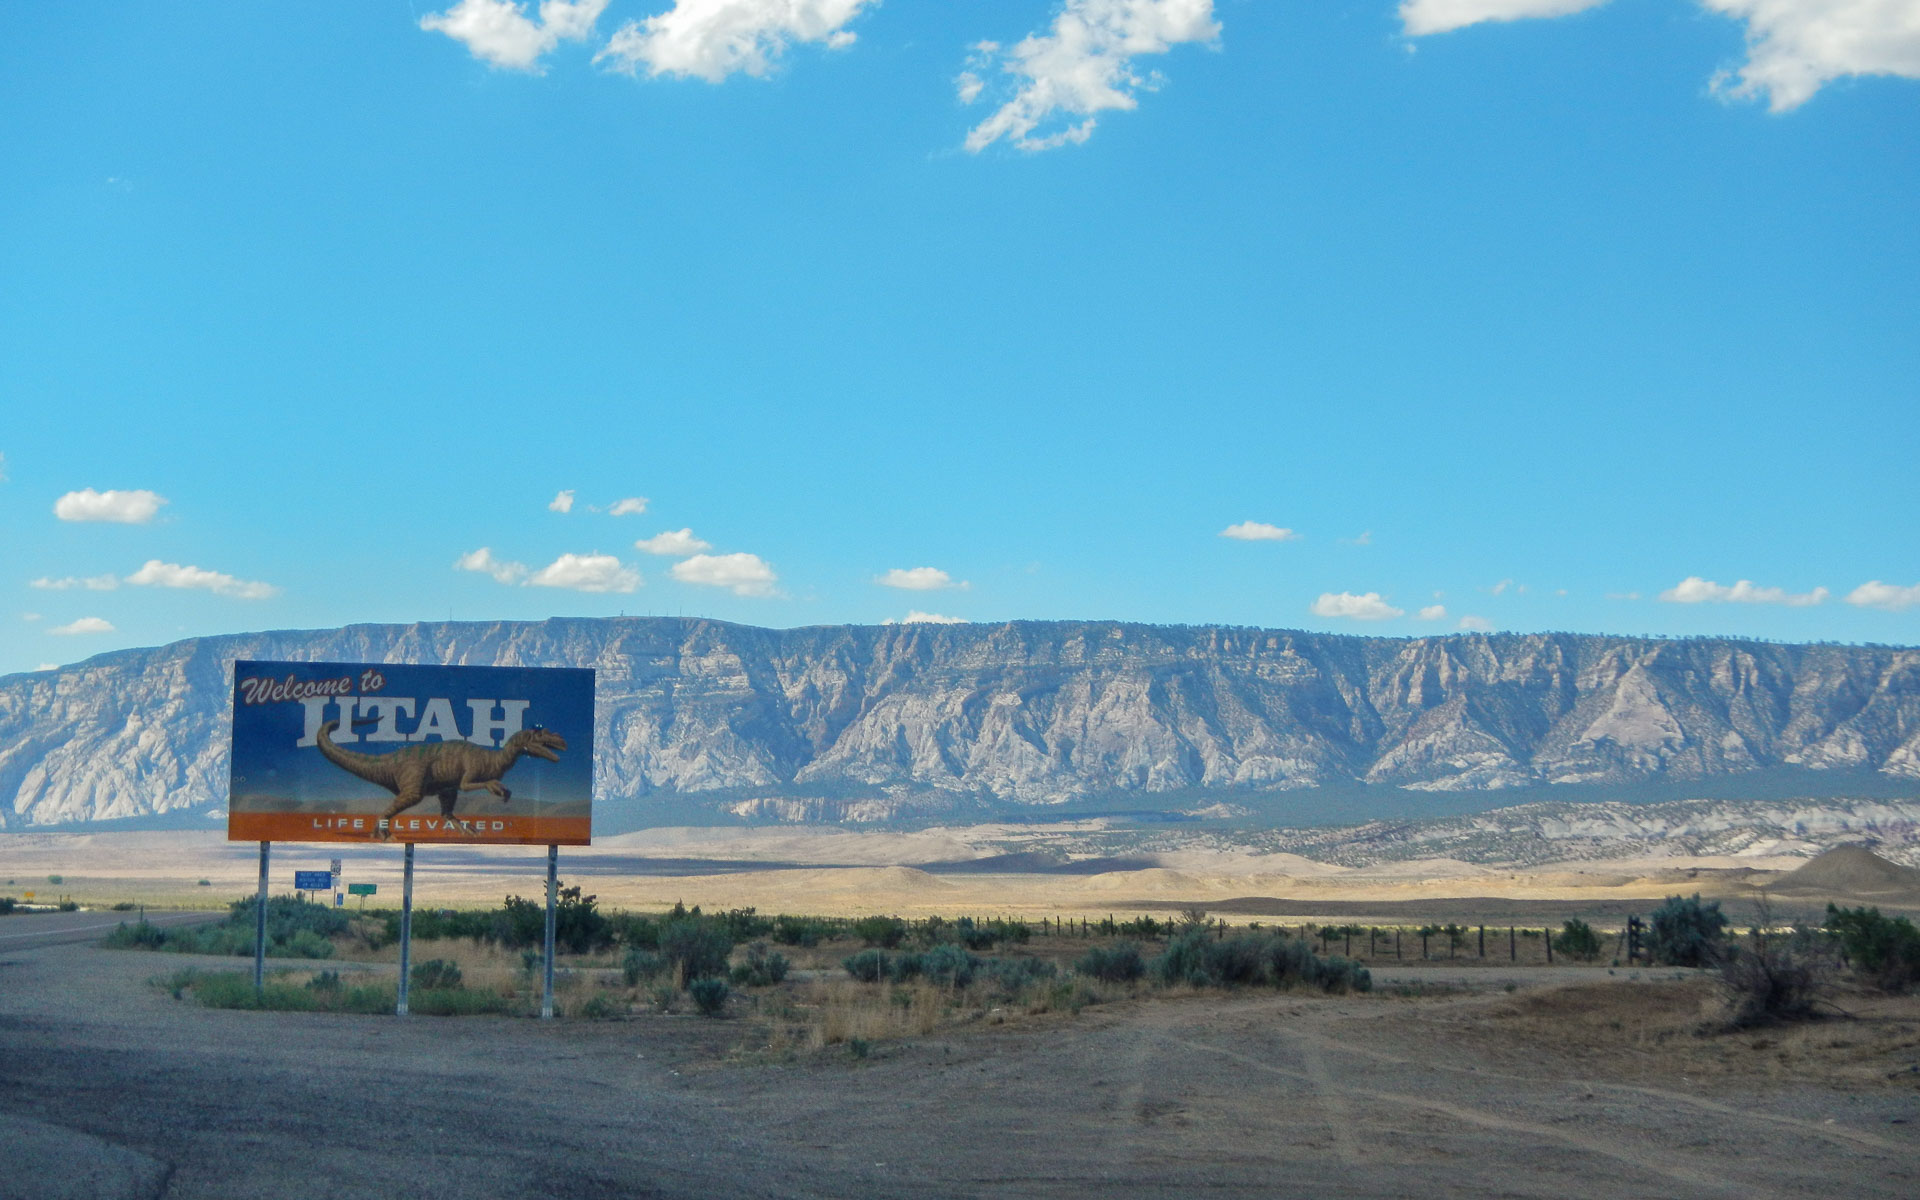 Welcome to Utah - Utah